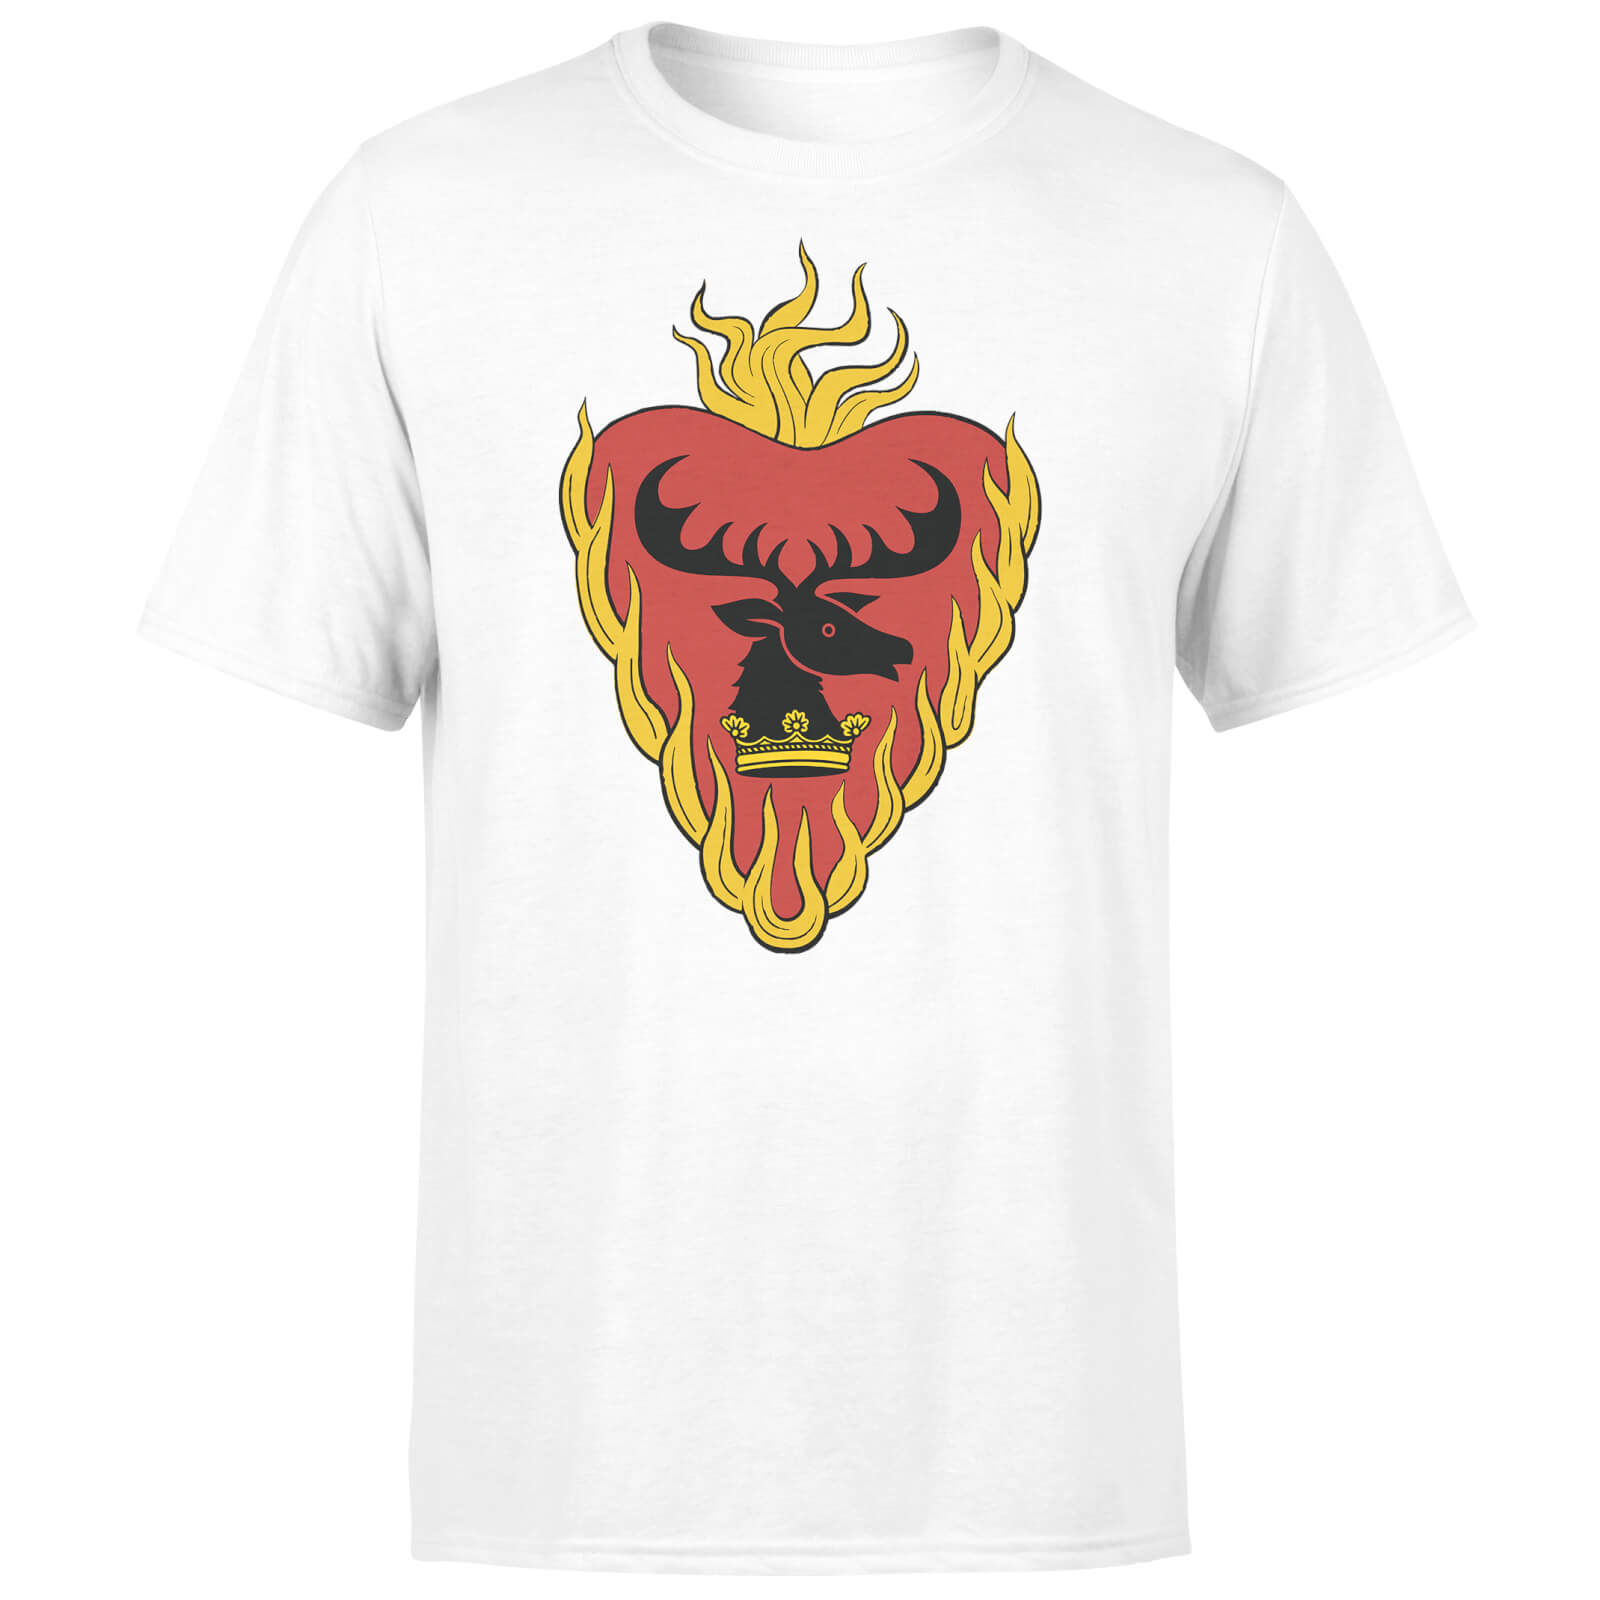 Game of Thrones Stannis Baratheon Sigil Men